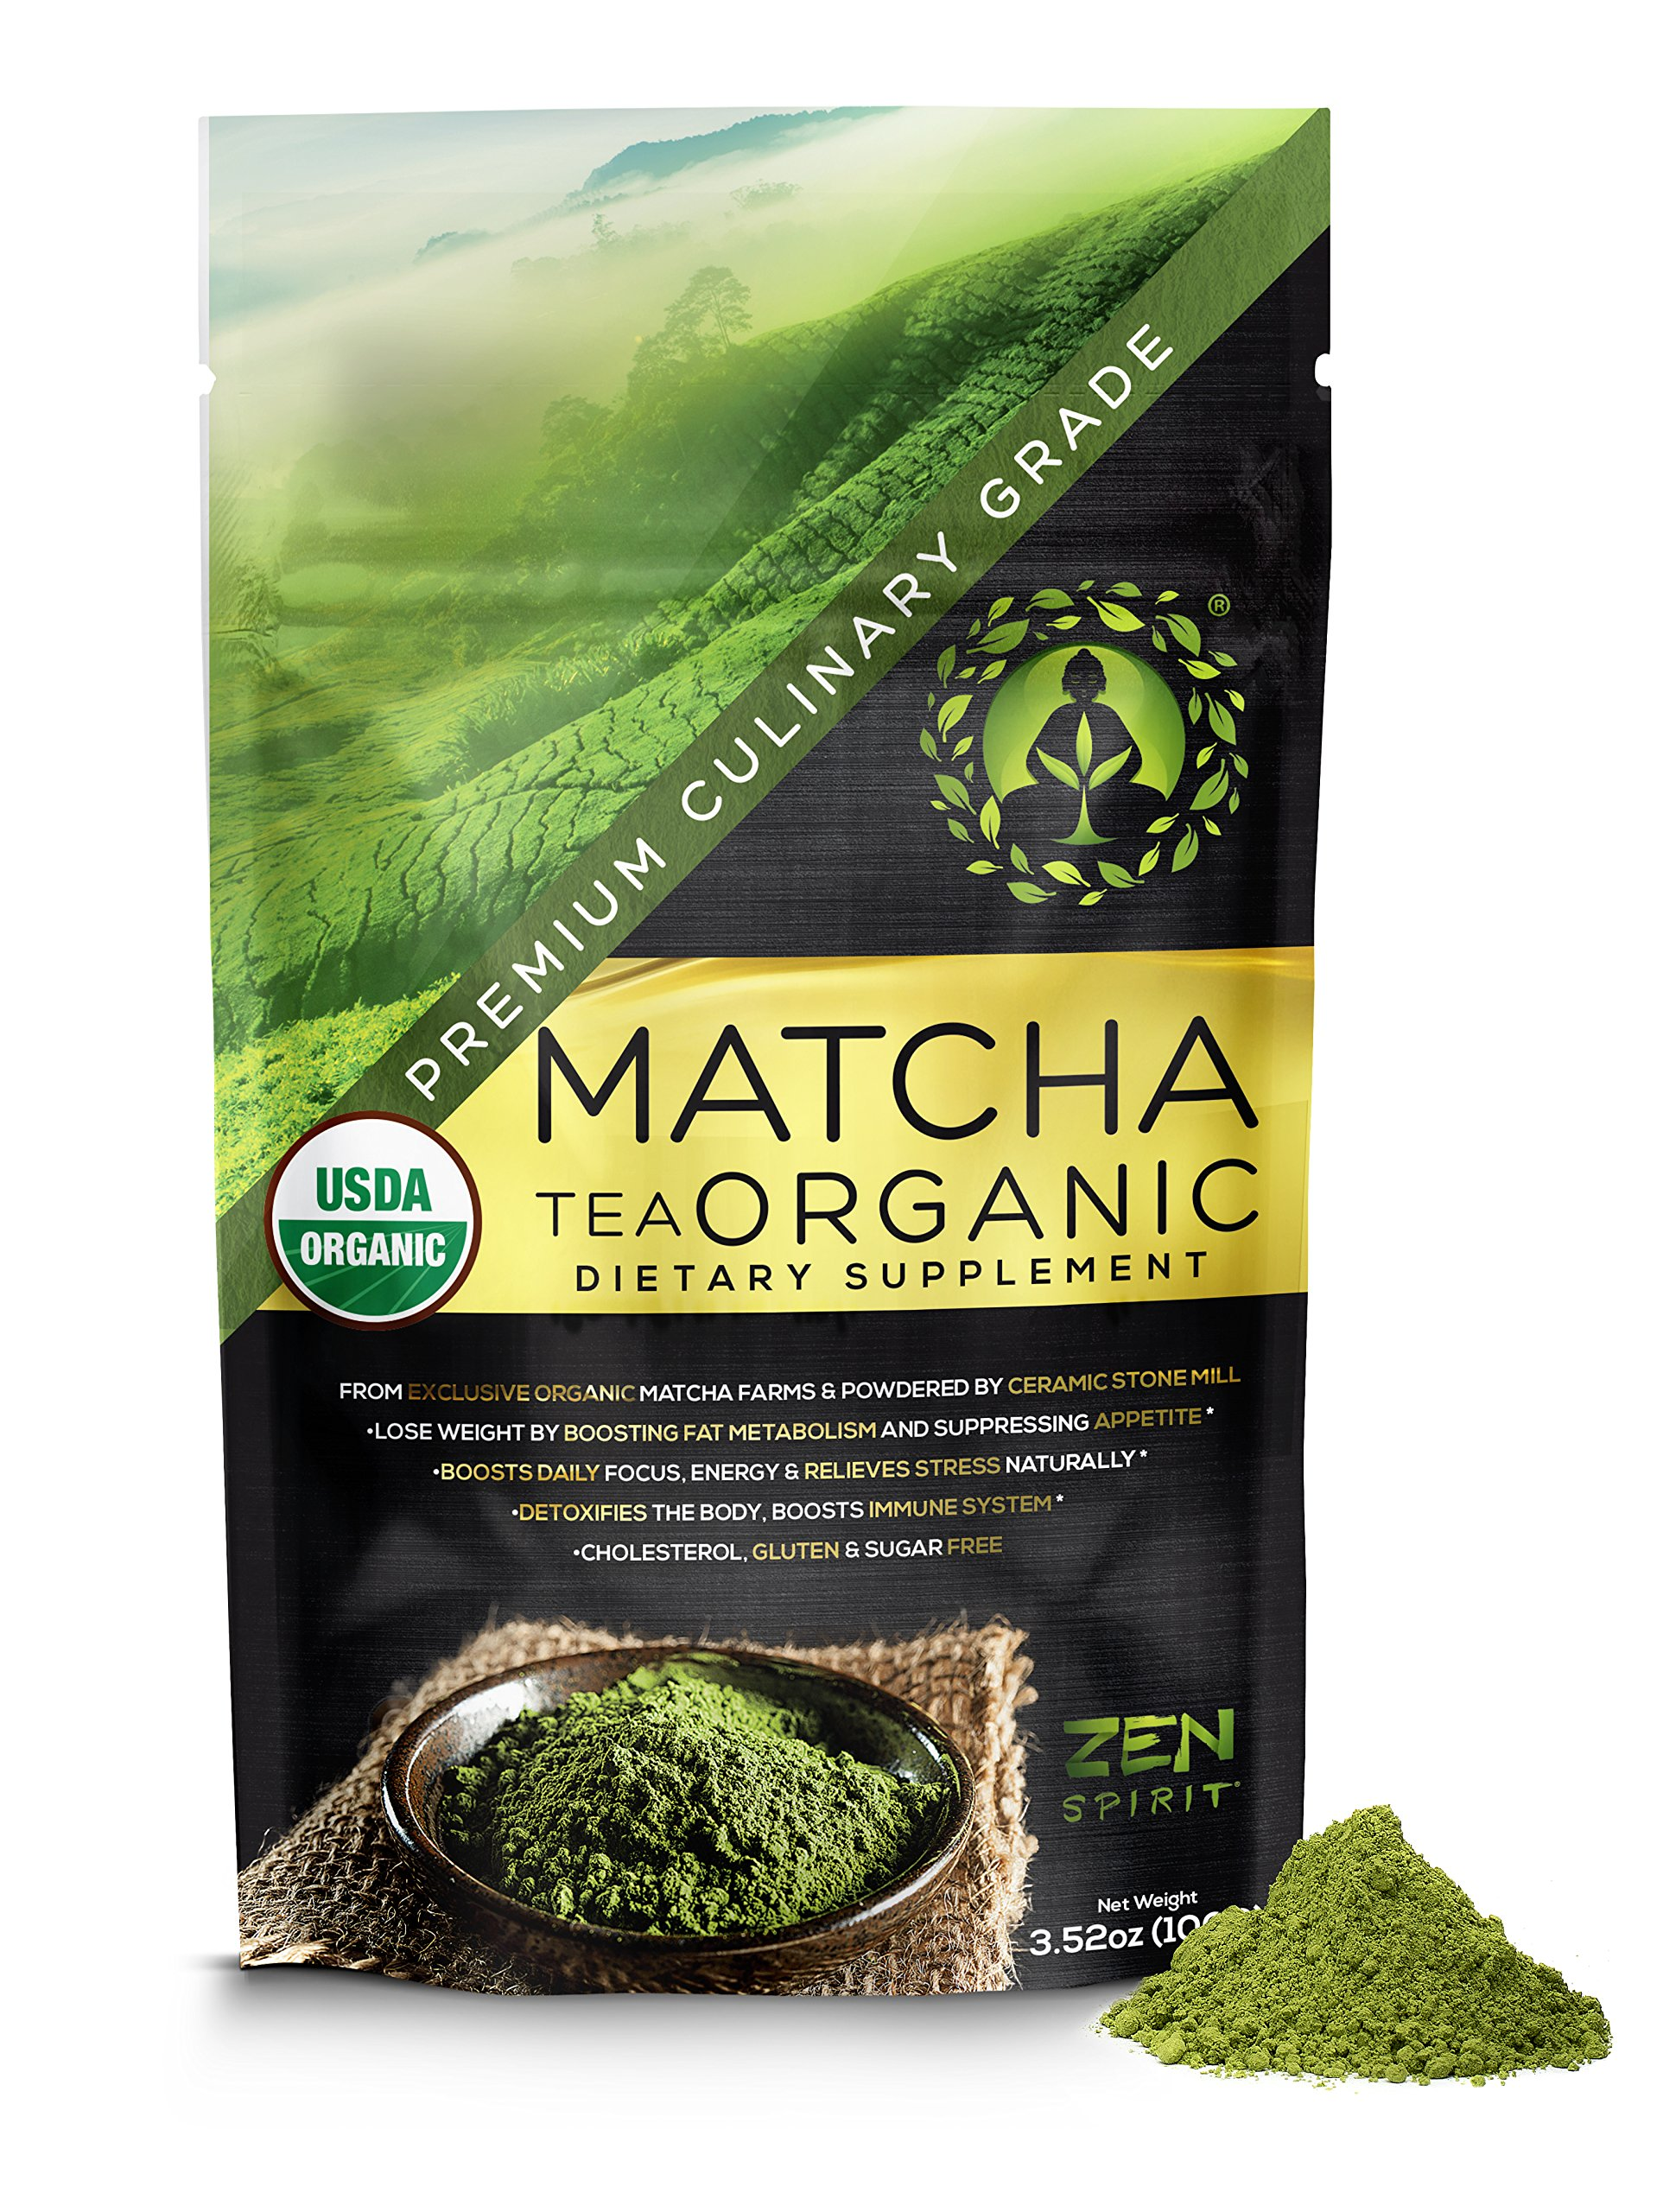 Matcha Green Tea Powder Organic - Japanese Premium Culinary Grade, Unsweetened & Sugar Free - USDA & Vegan Certified - 100g (3.52 oz) - Perfect for Baking, Smoothies, Latte, Iced tea & Weight Loss by Zen Spirit